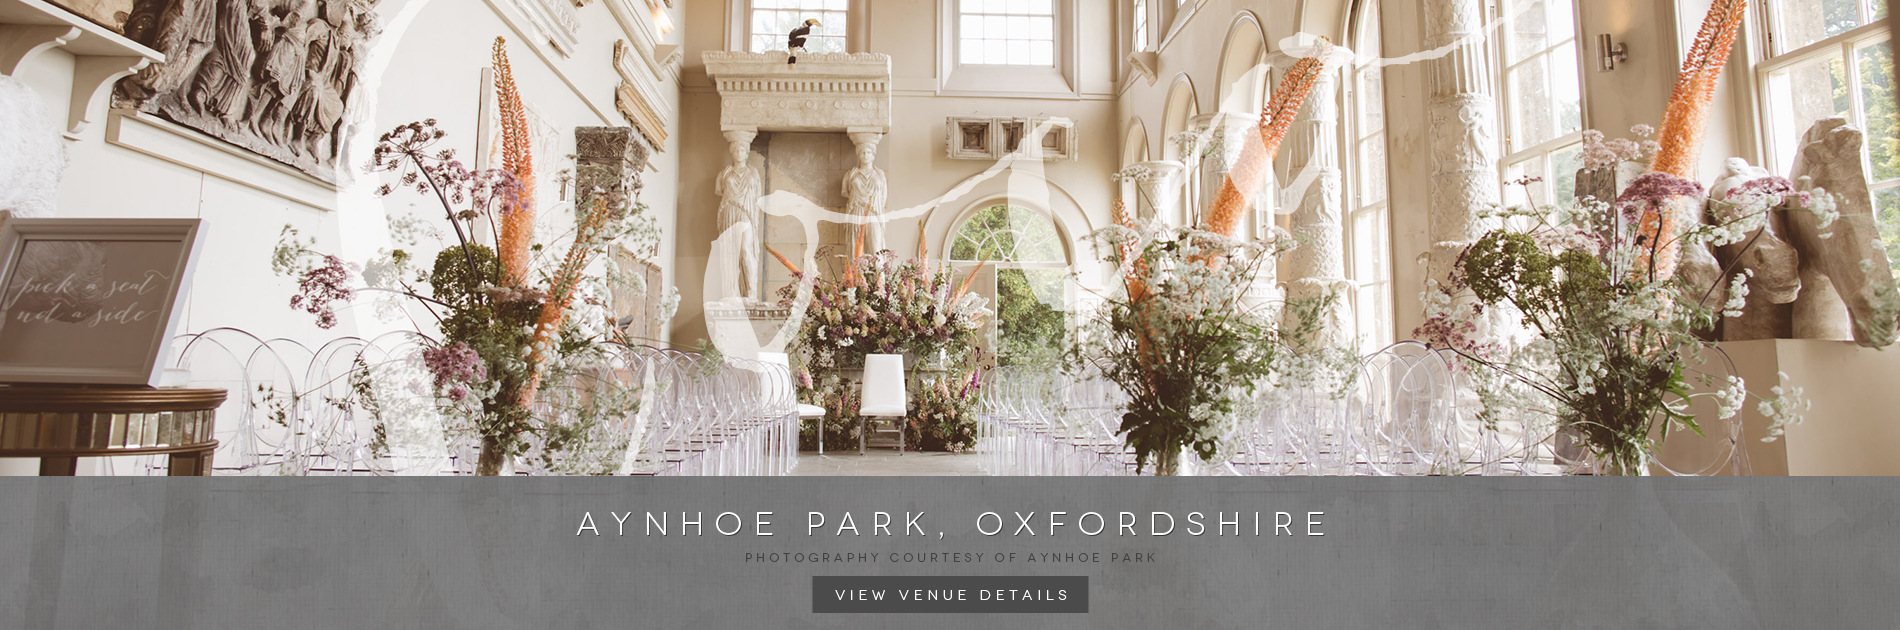 Coco wedding venues slideshow - luxury-wedding-venues-in-oxfordshire-aynhoe-park-january-2016